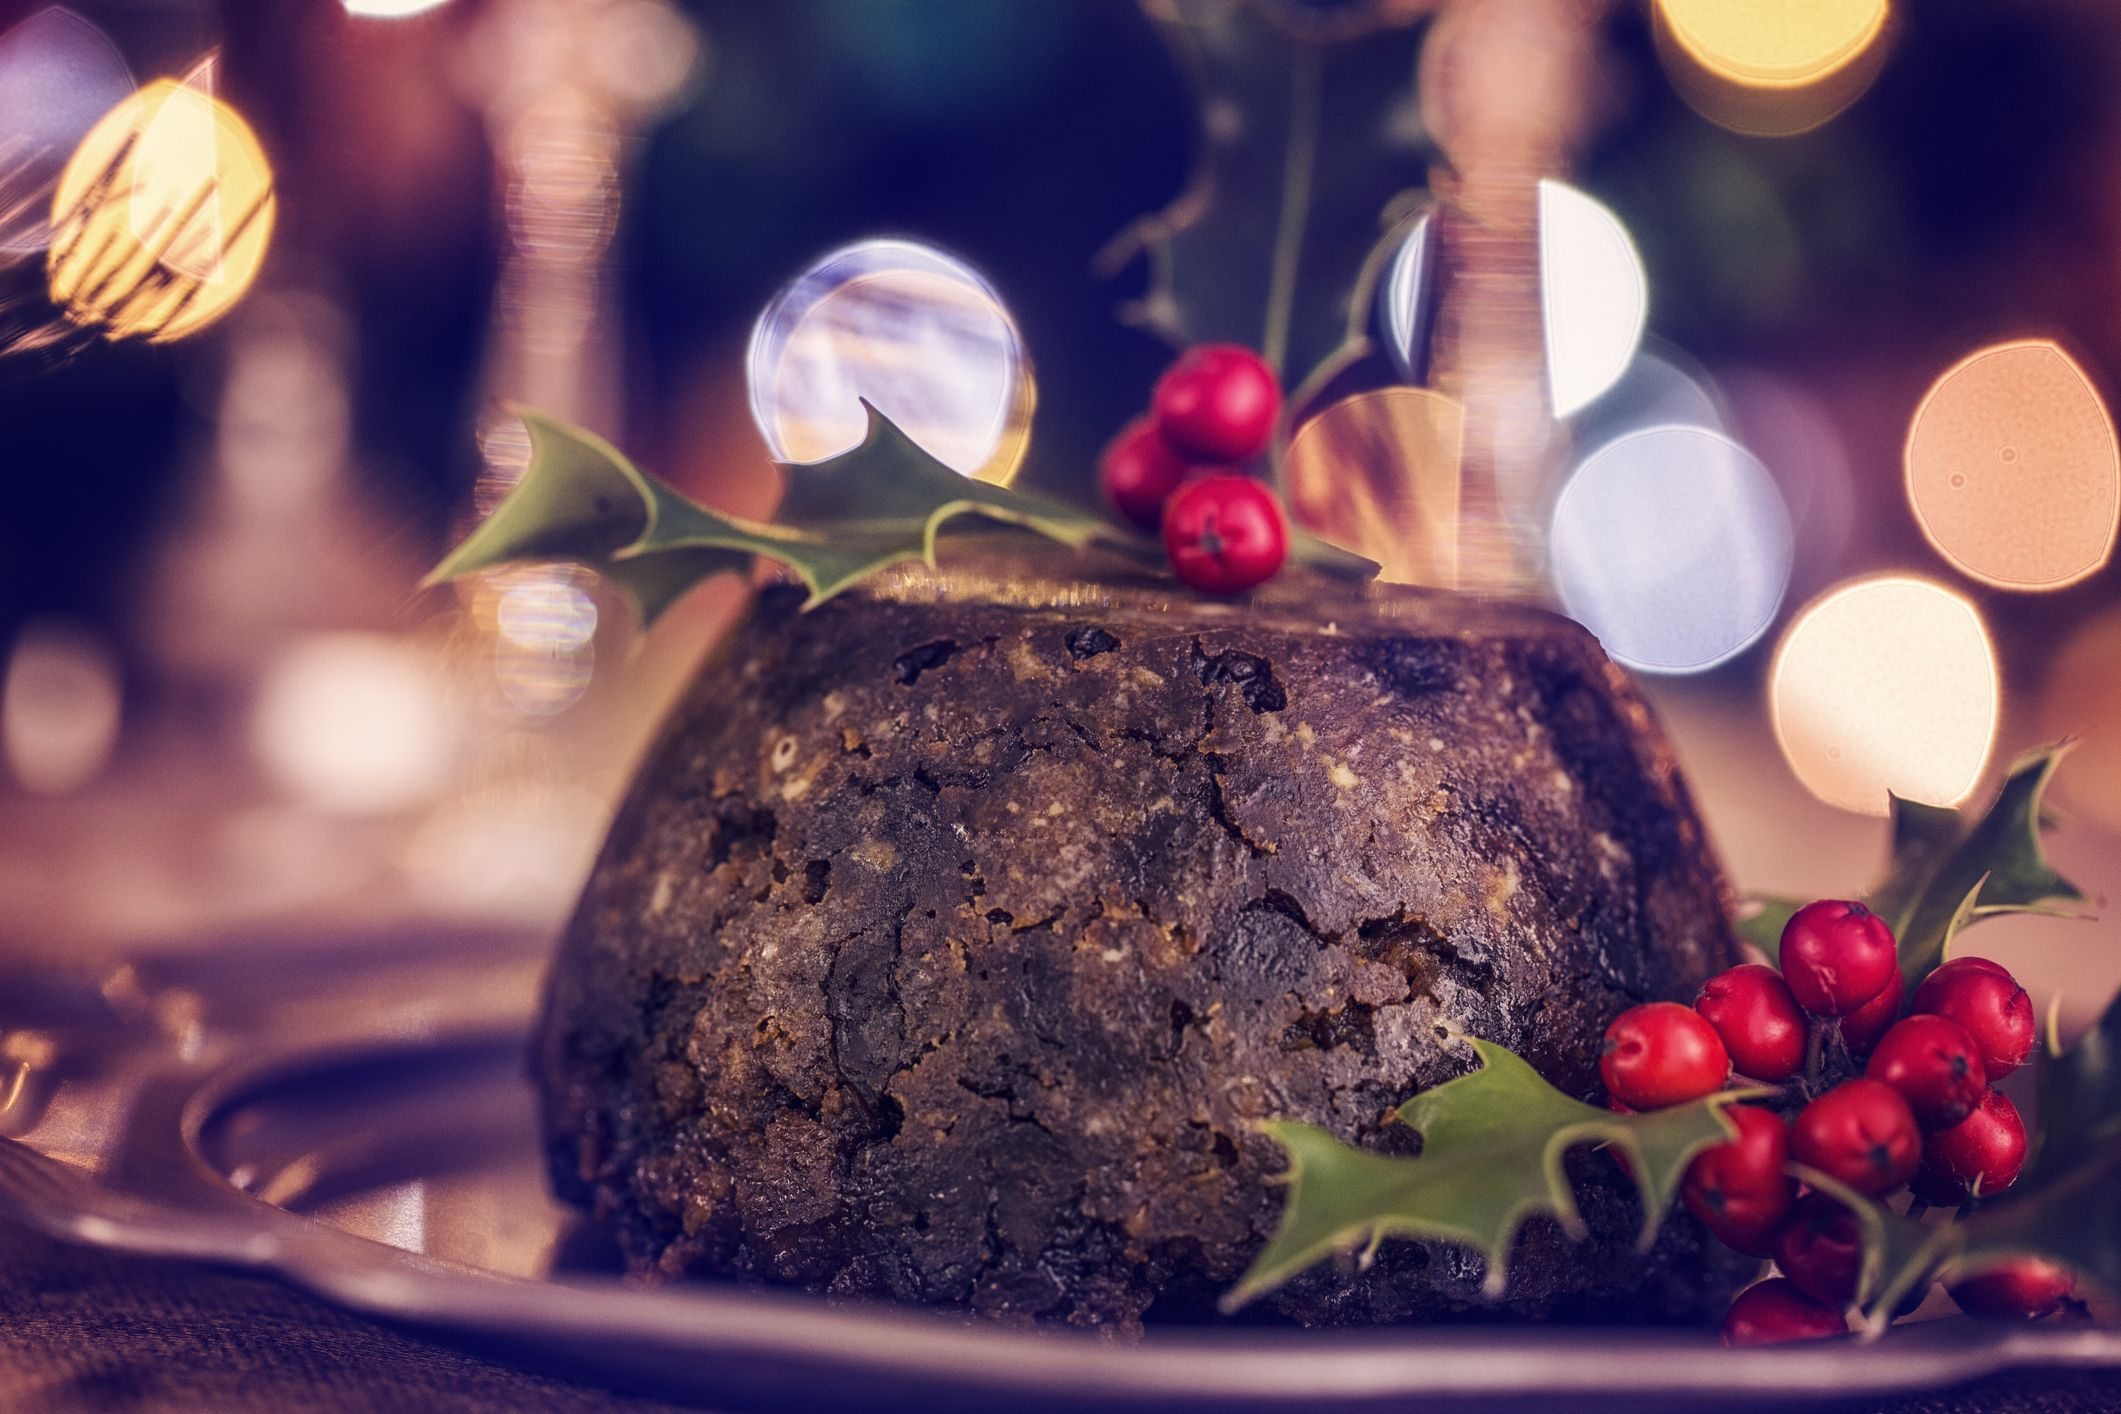 The best Christmas pudding for 2019 is a £4 one from Iceland